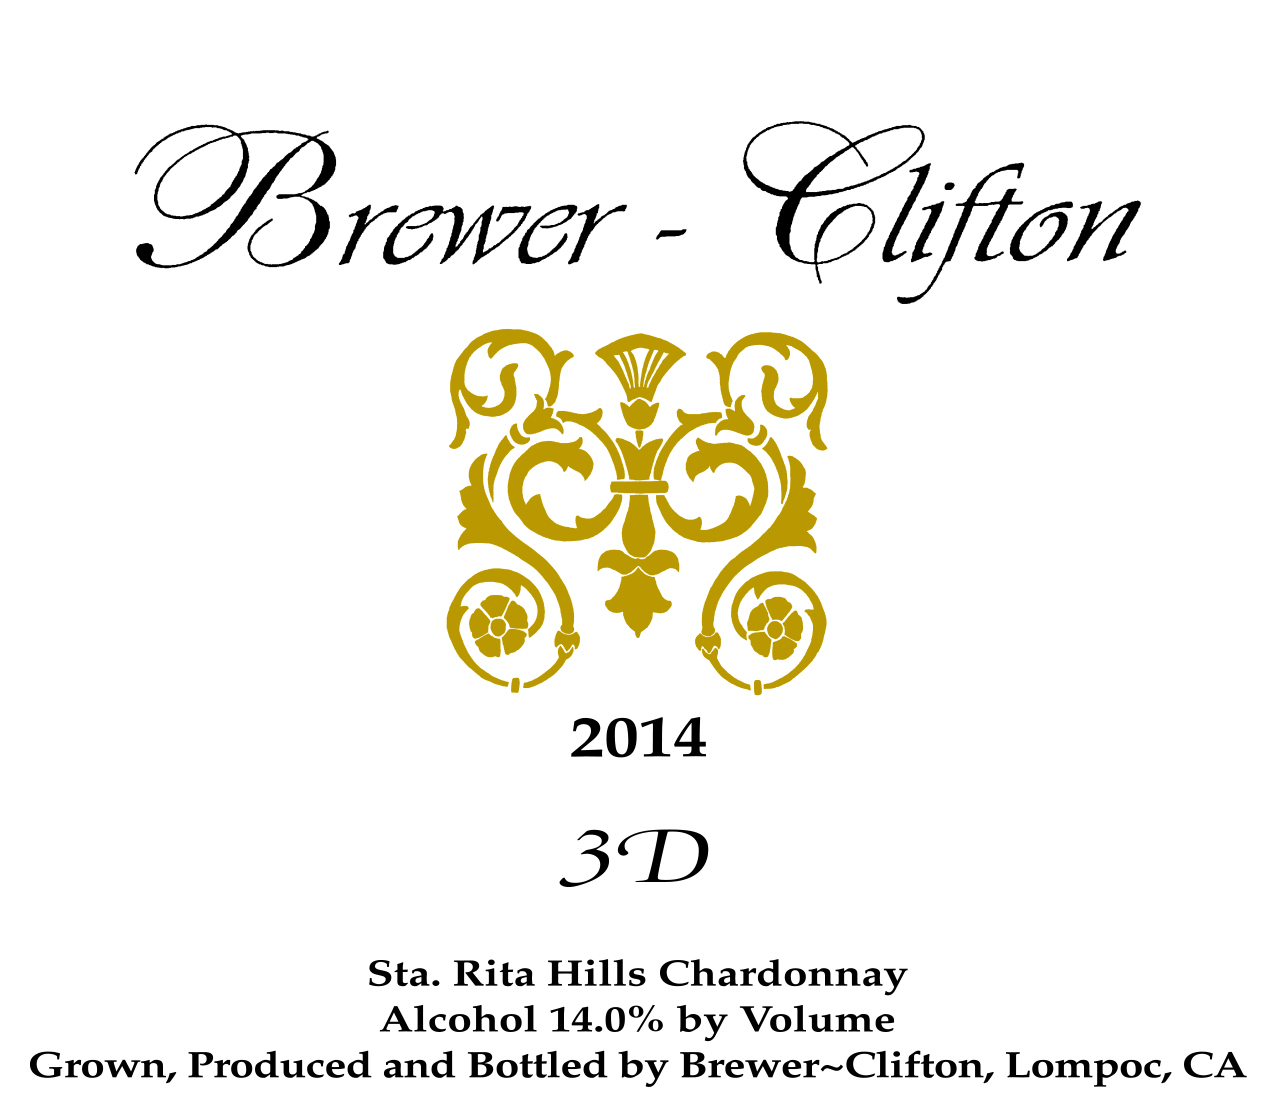 Brewer-Clifton Chardonnay 3 D Vineyard